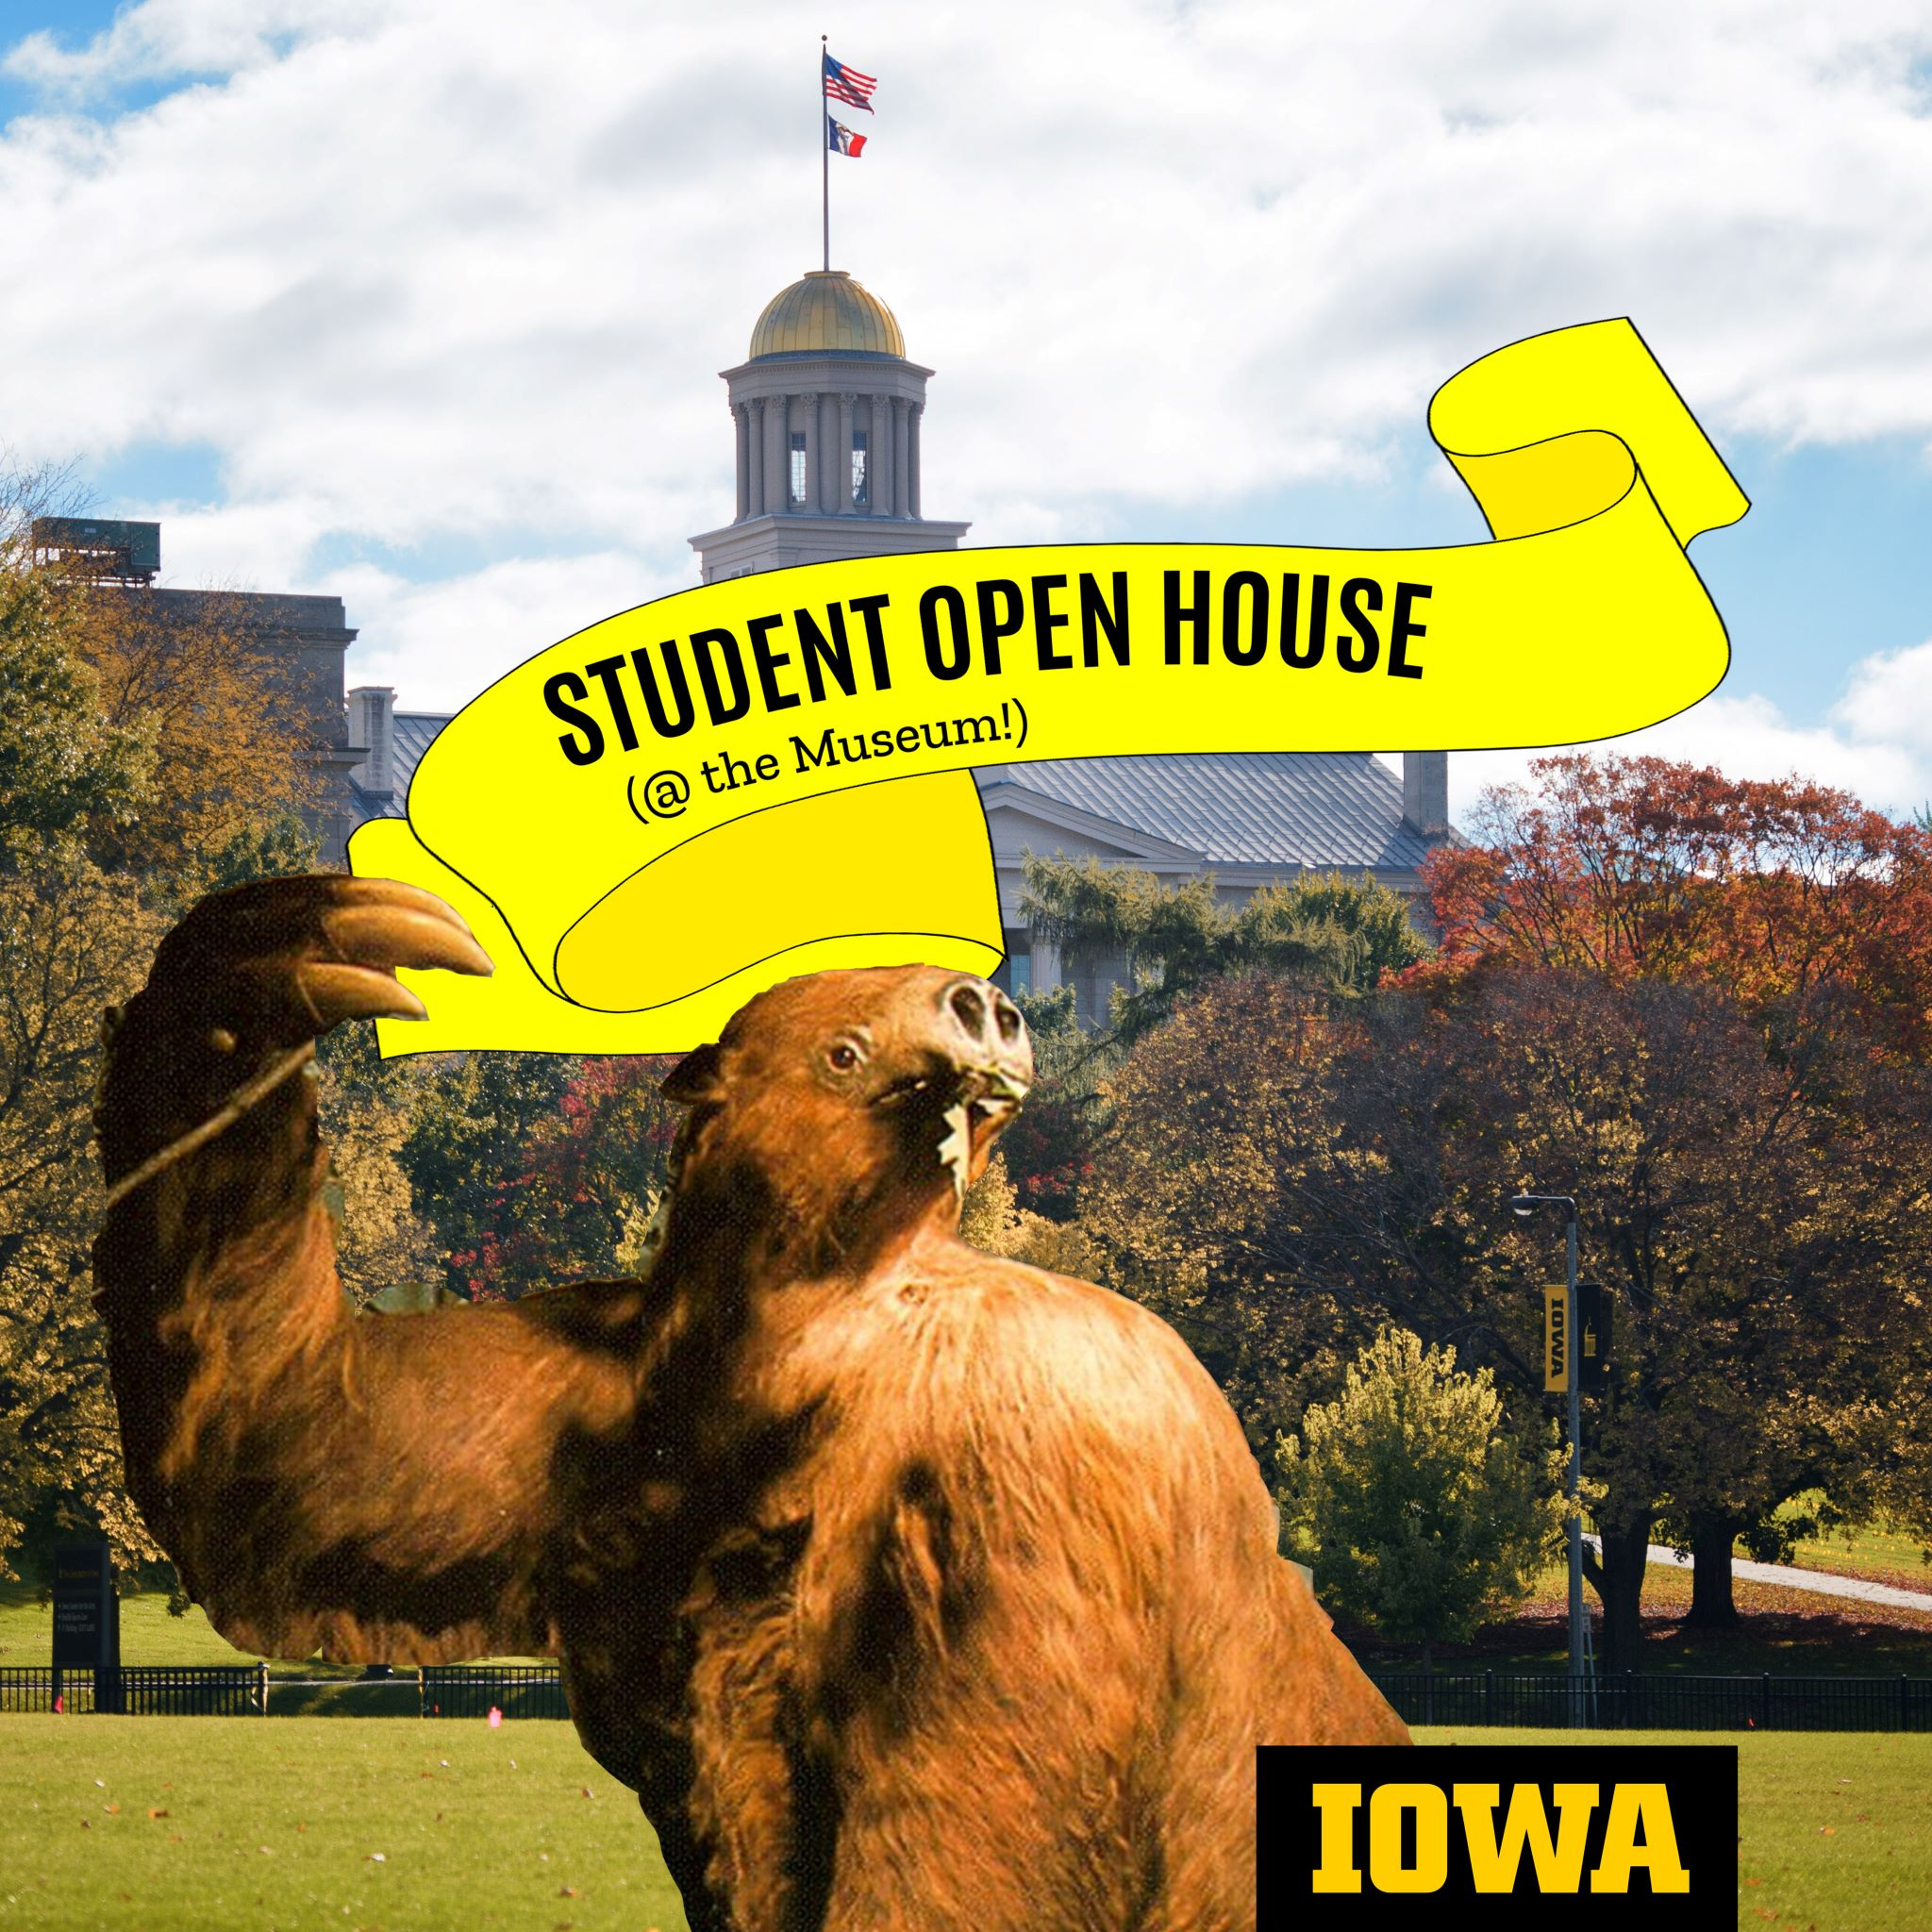 Student Open House (@ the Museum!)